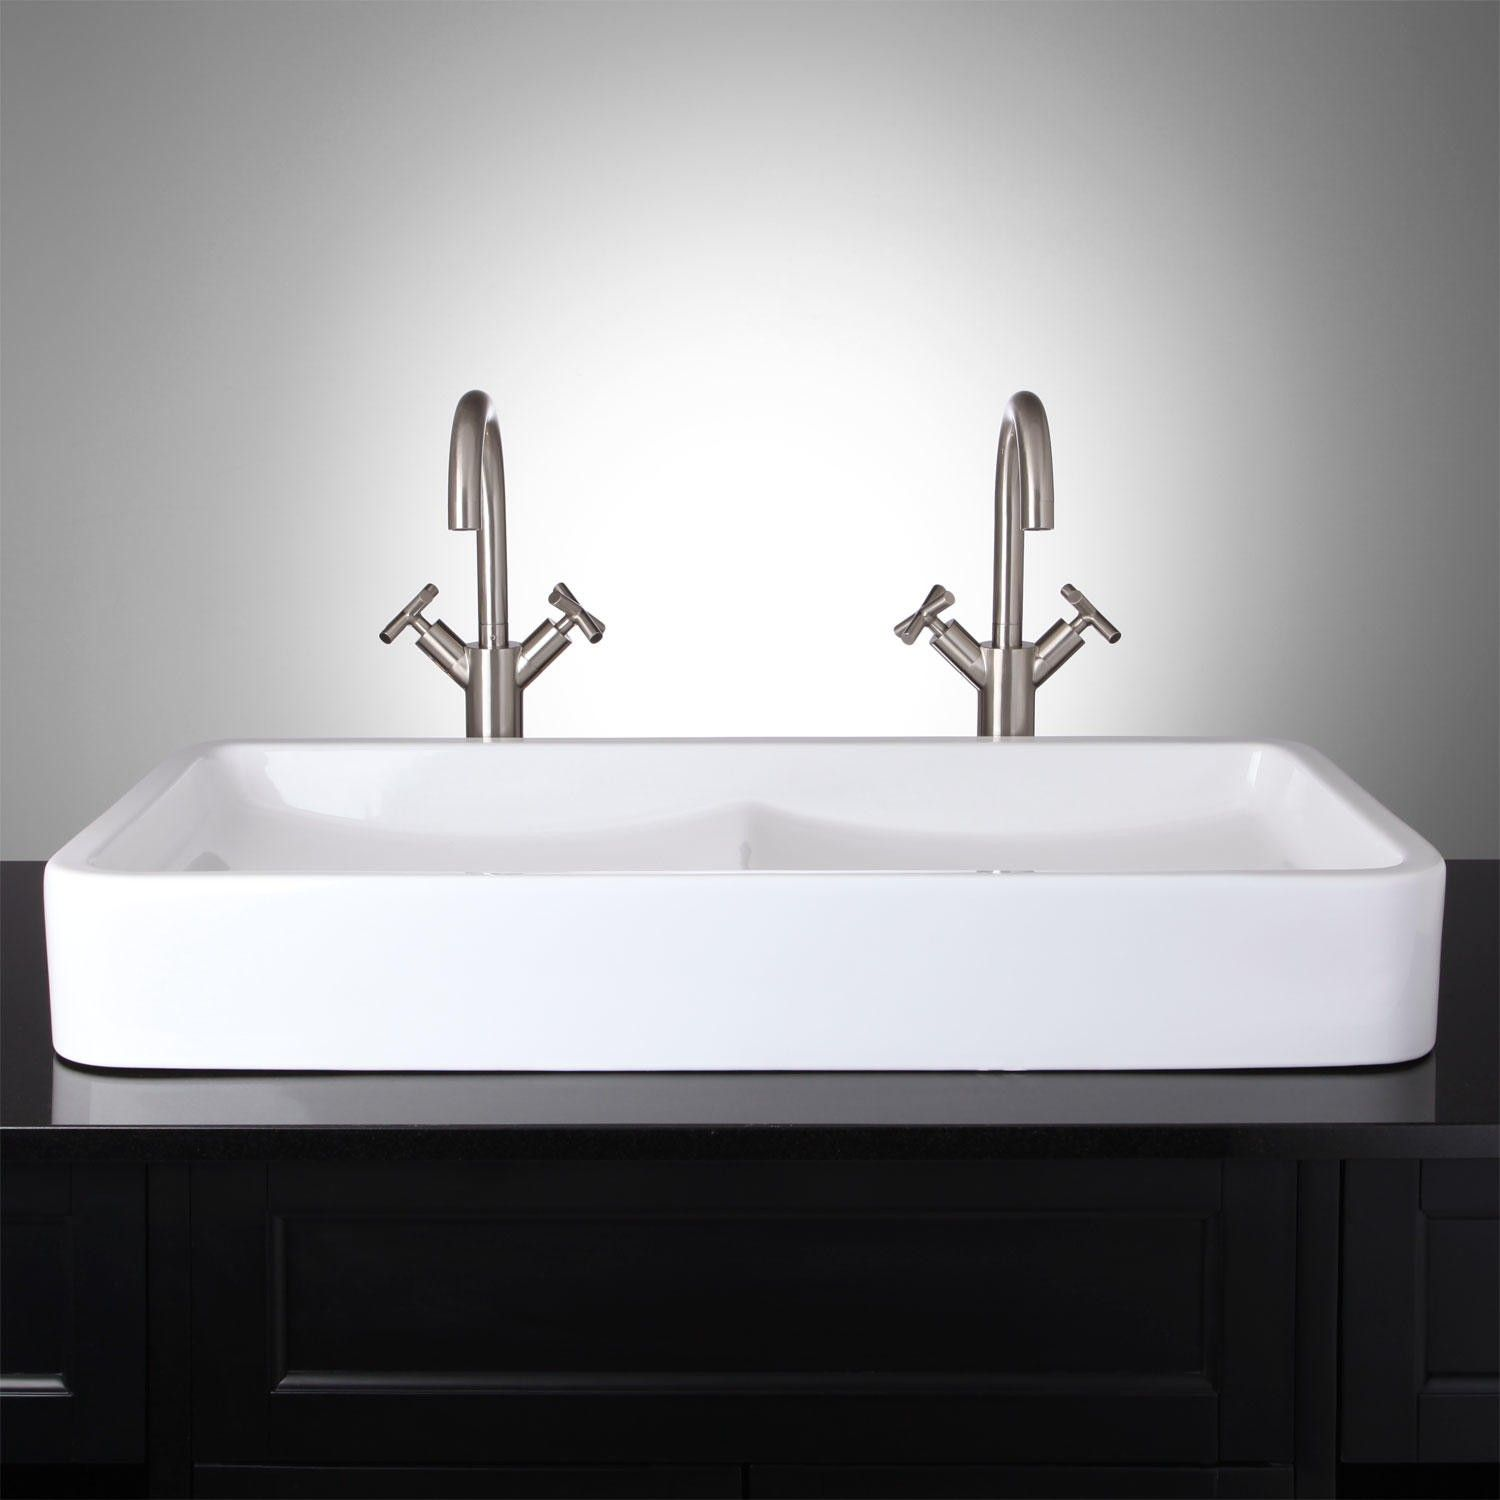 This Is It I Love The Double Sink For A Small Master Bath Idea - Undermount trough sink bathroom for bathroom decor ideas